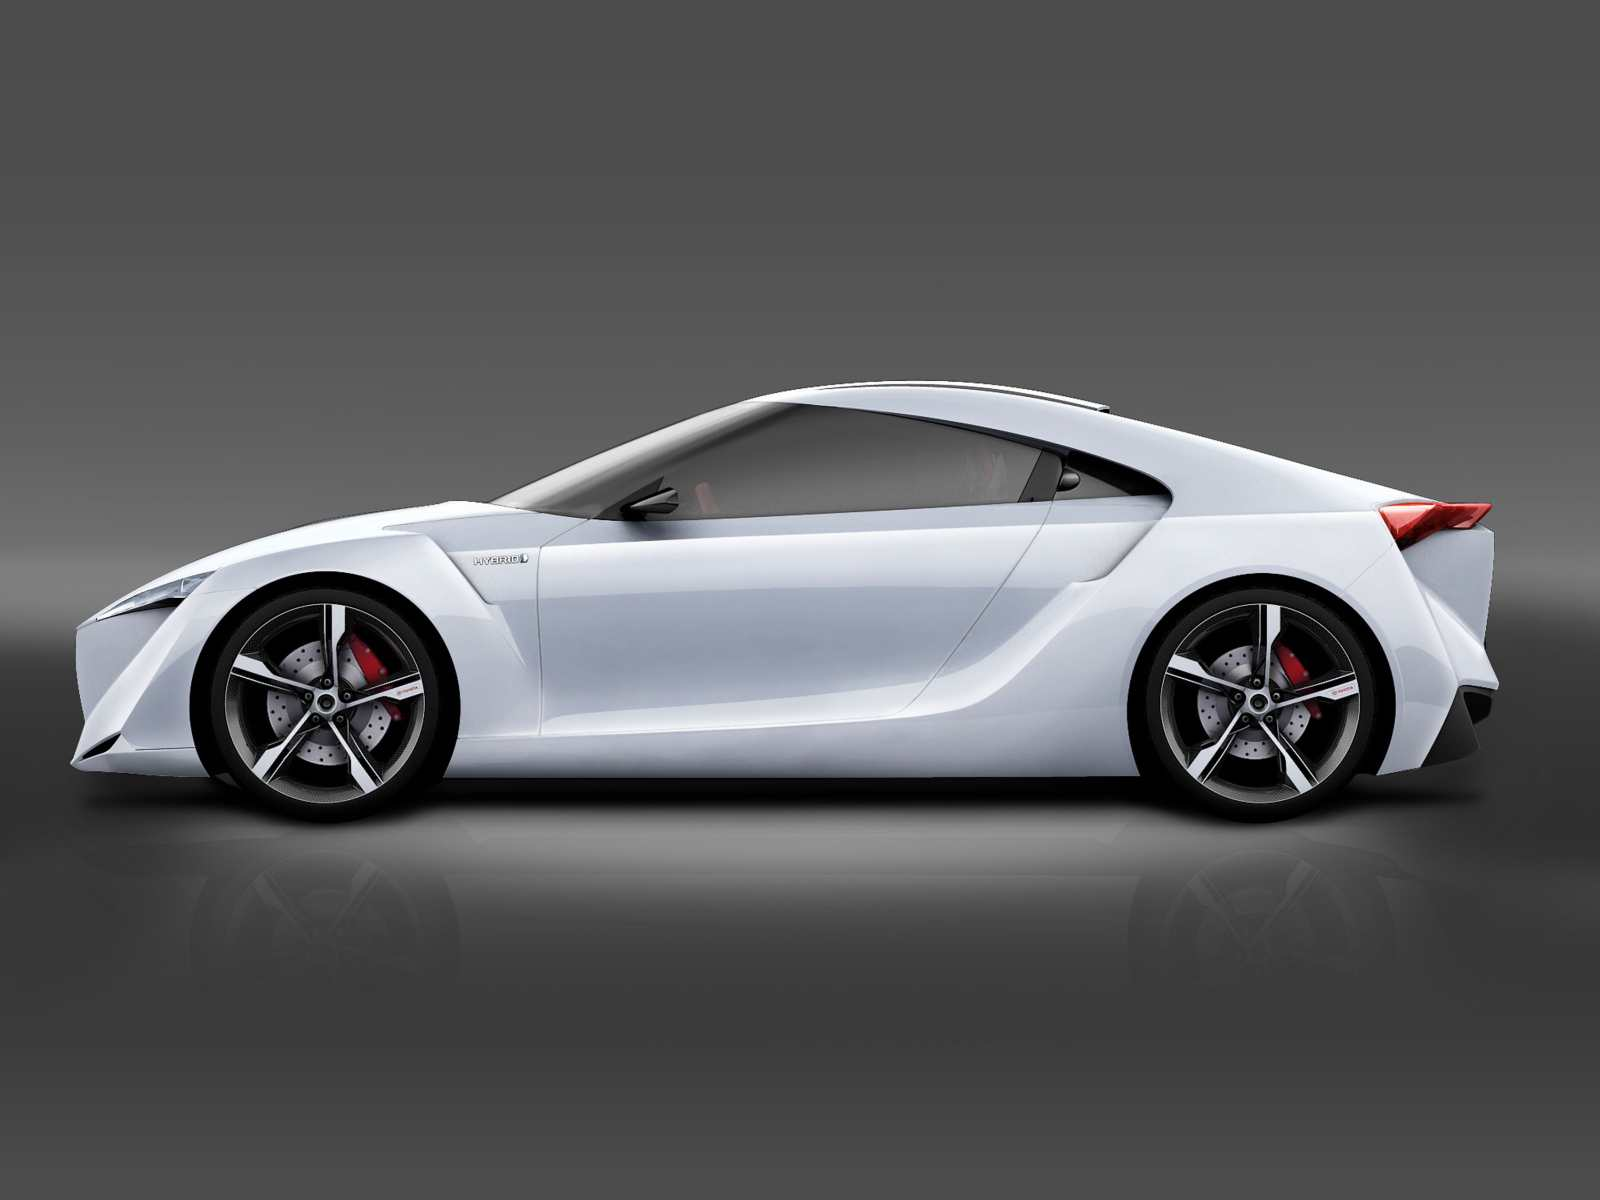 White Toyota Supra 22758 Hd Wallpapers in Cars   Imagescicom 1600x1200